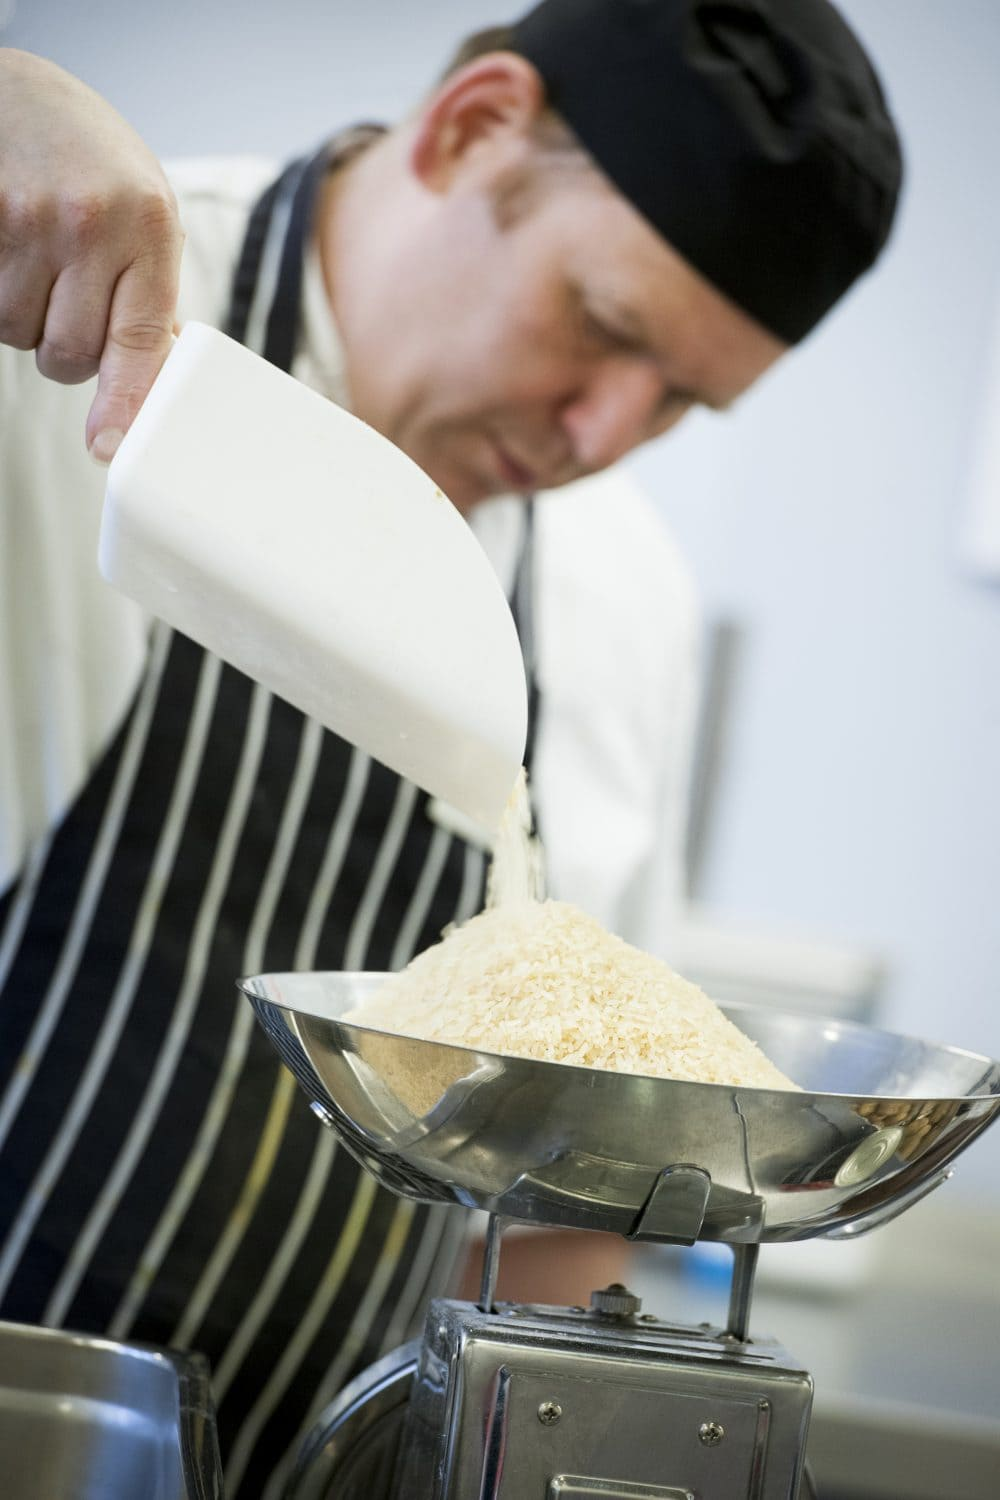 Sodexo Chef weighing rice